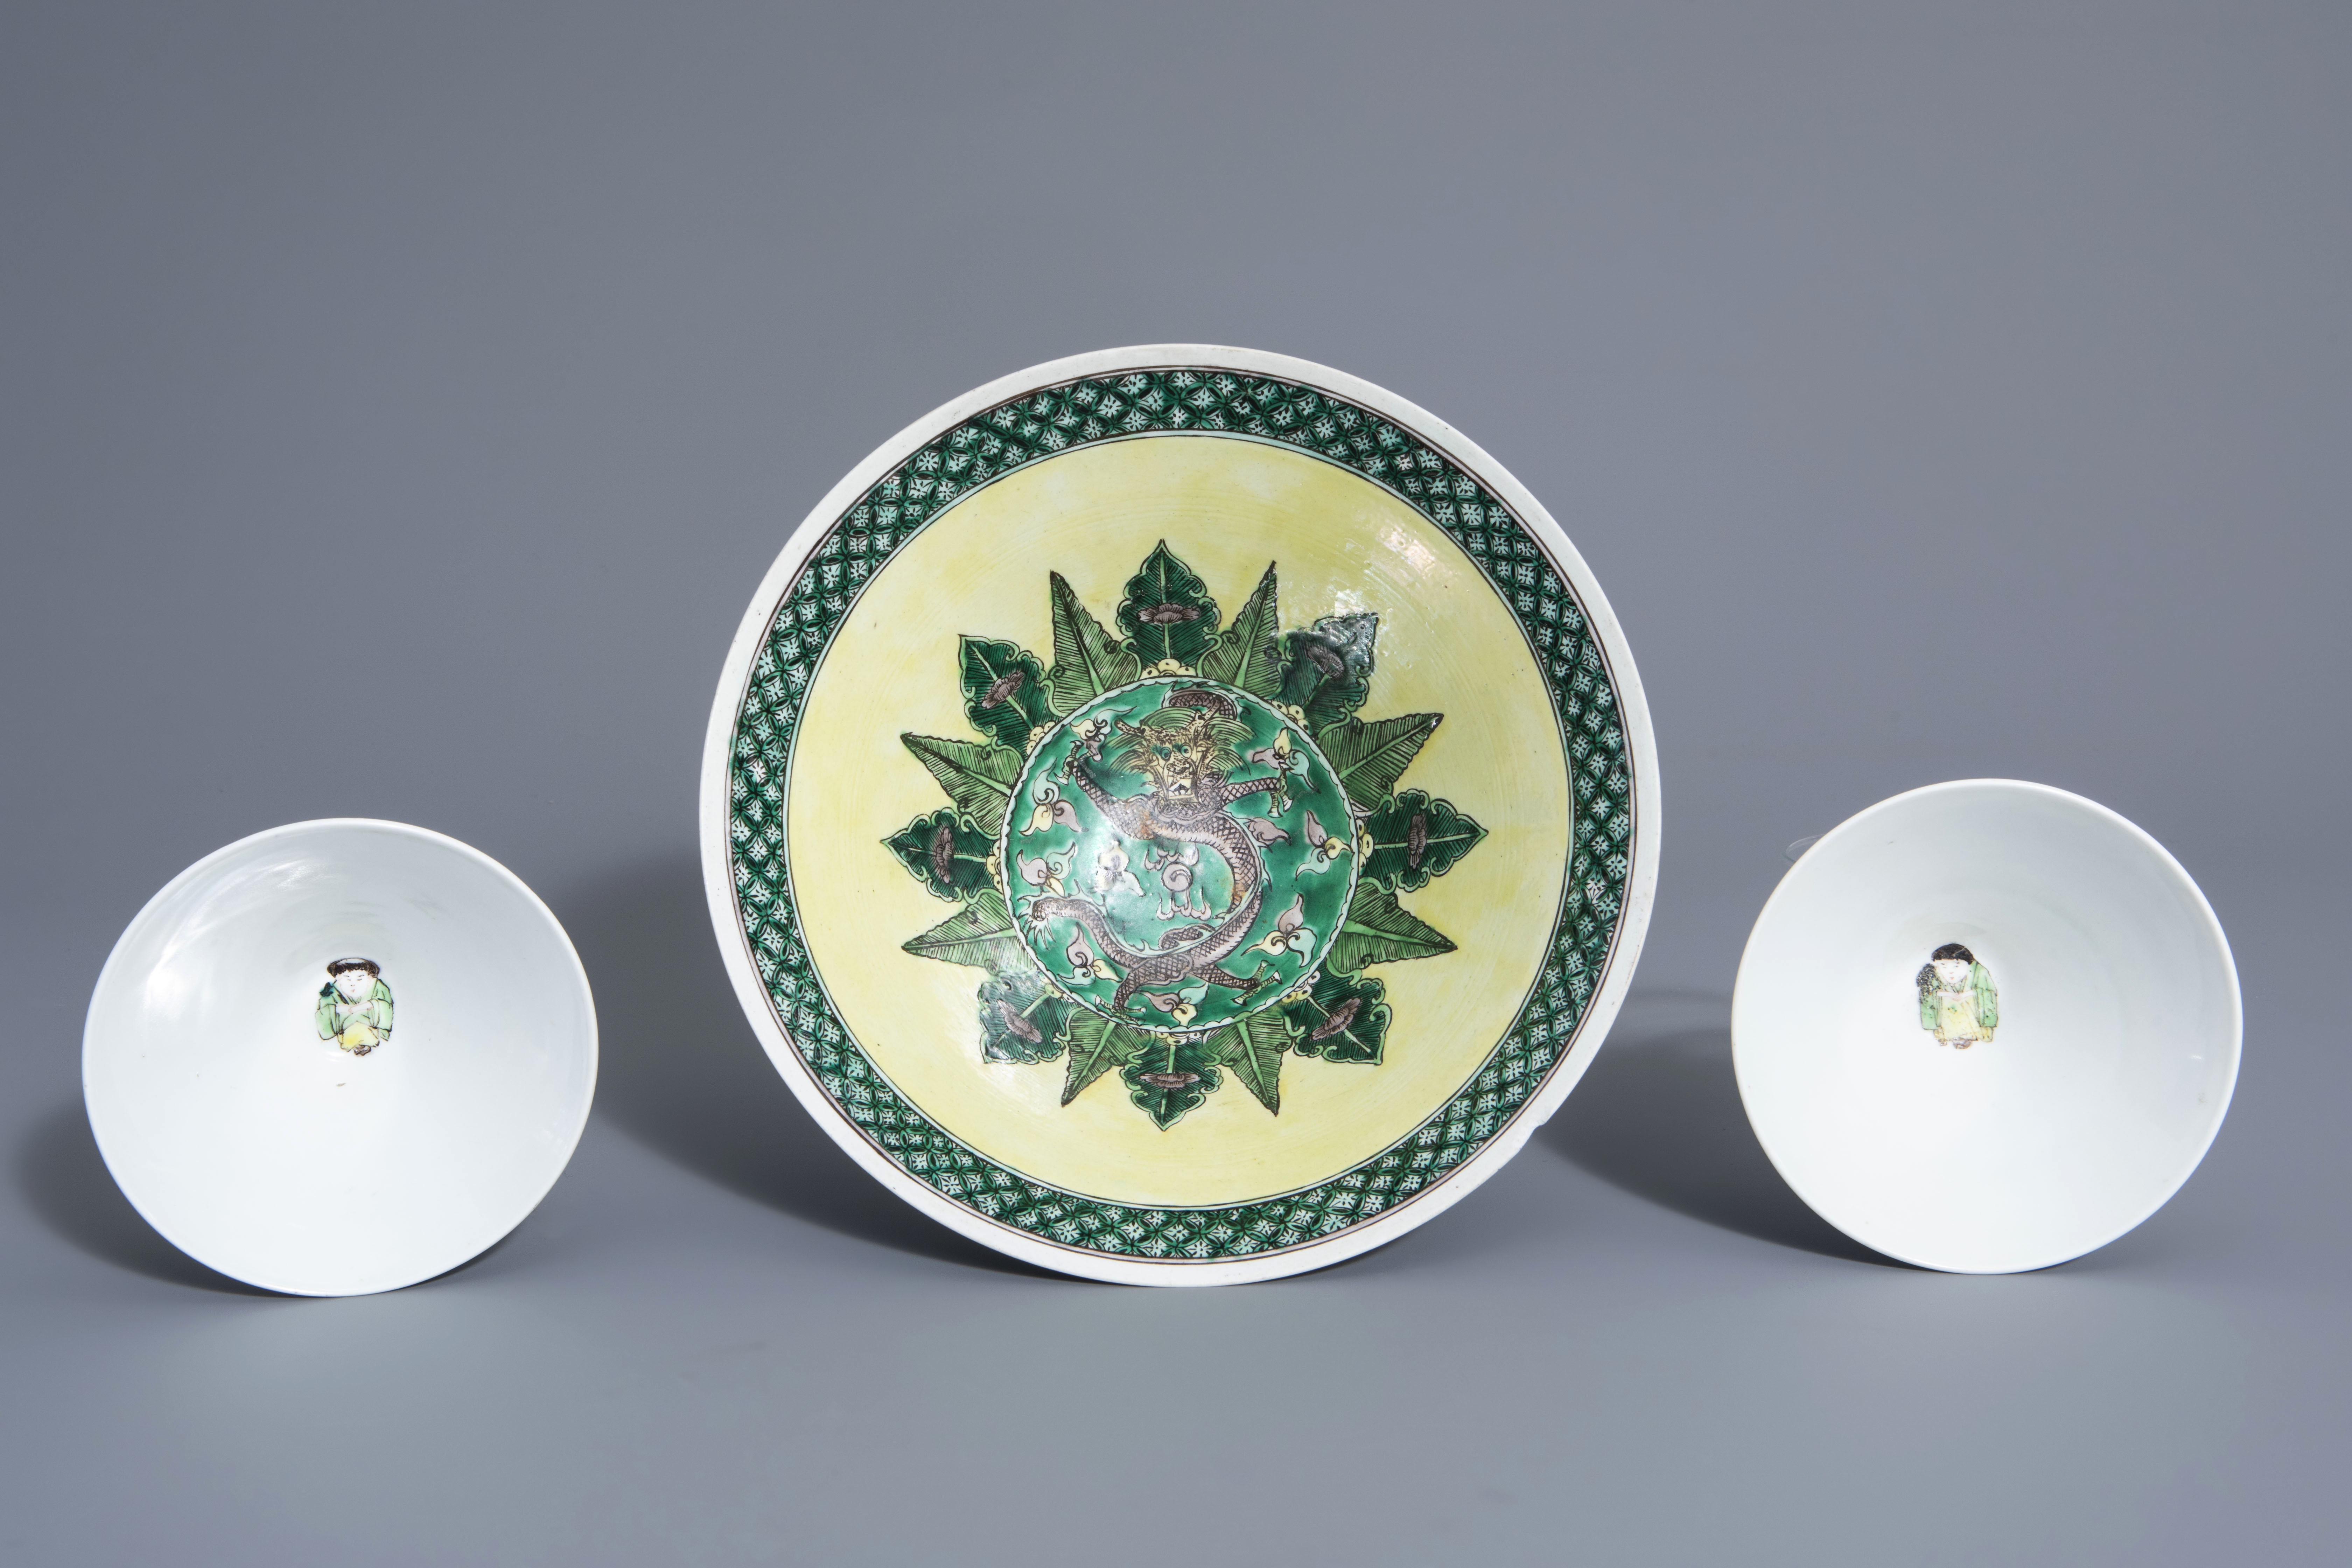 Three Chinese verte biscuit bowls with figurative design, Republic, 20th C. - Image 6 of 7